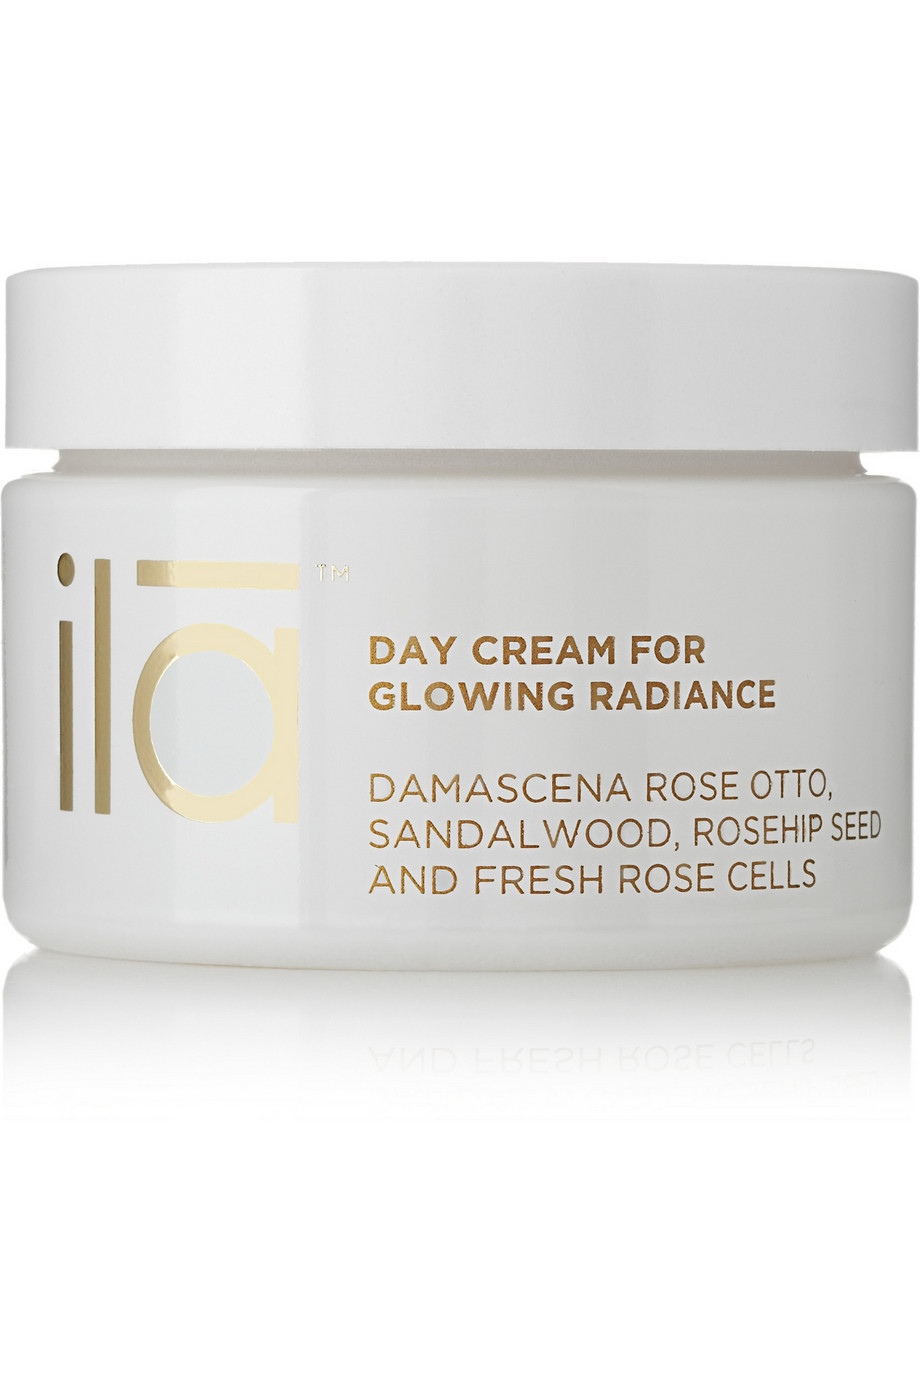 Ila Body Cream Ila Day Cream For Glowing